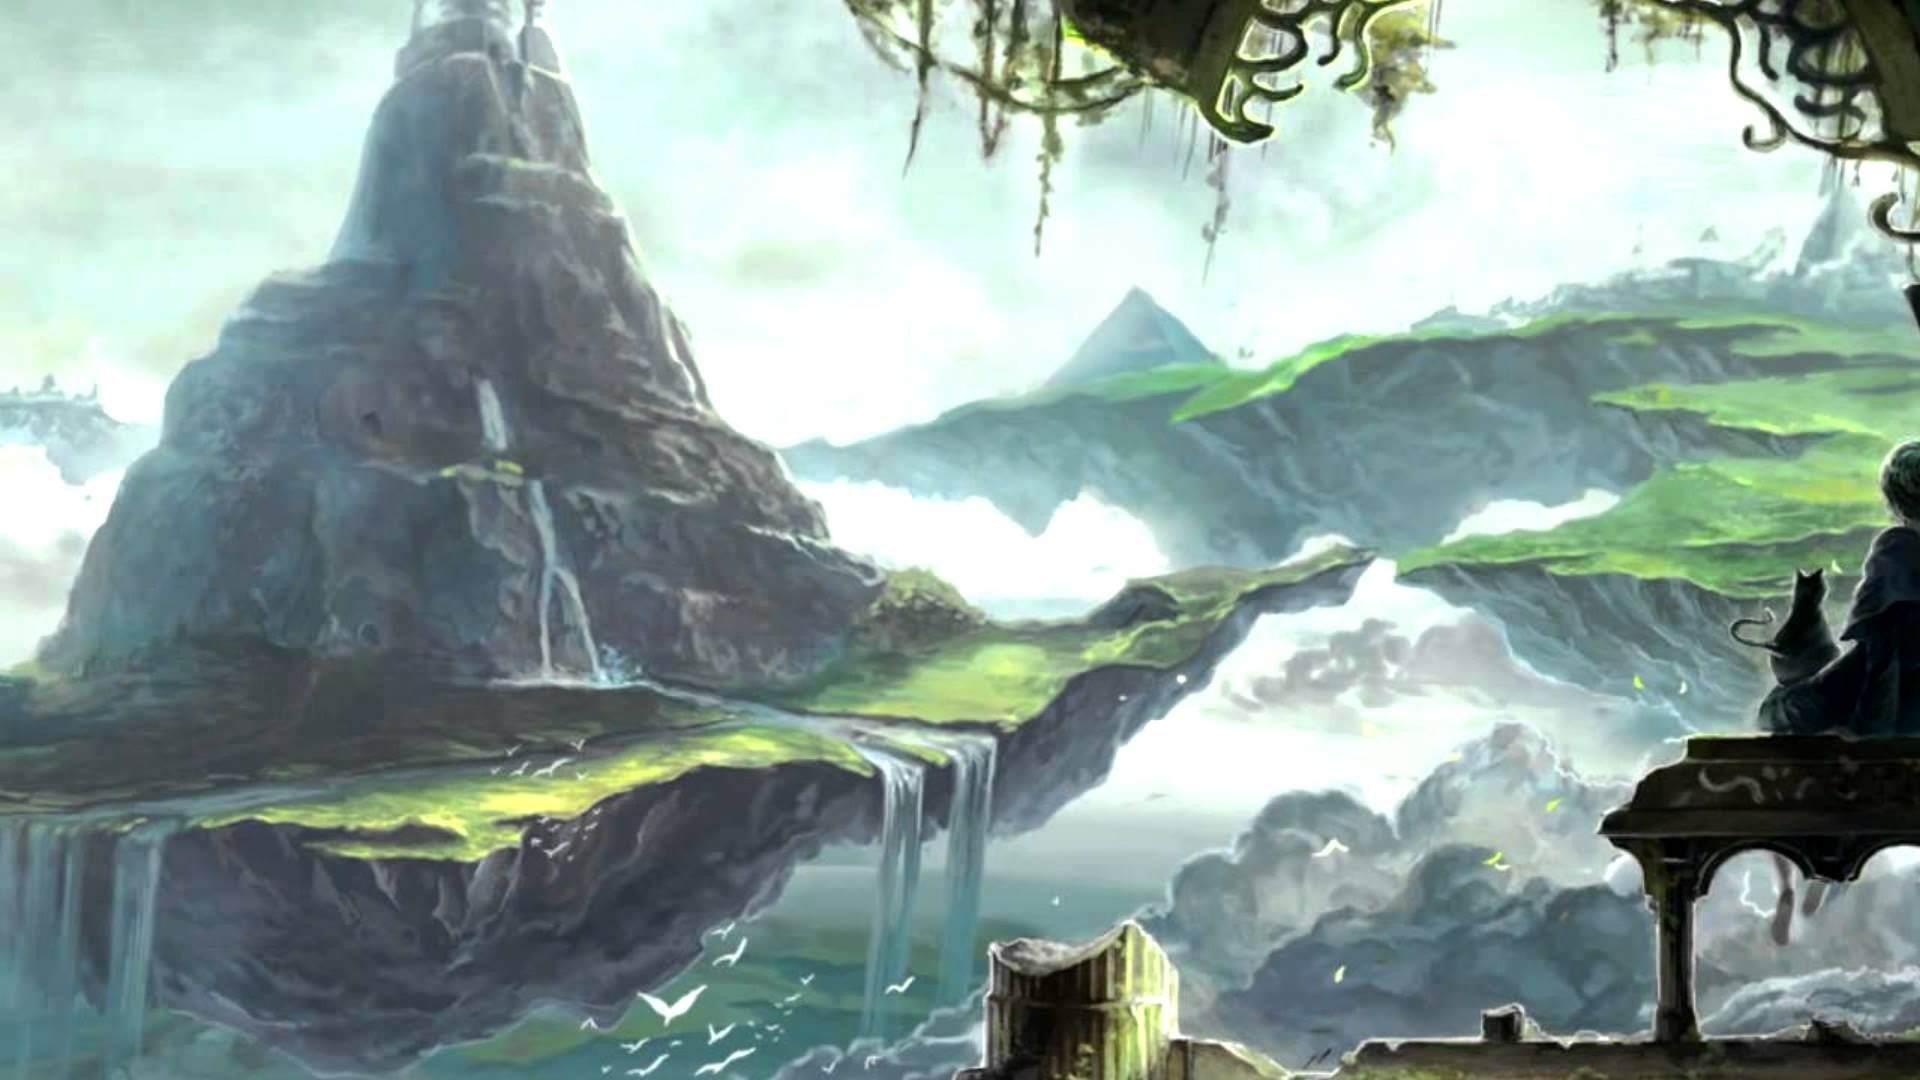 The Best Chrono Trigger Wallpaper I Have Found So Rpg Gamers Wallpaper Scenery Wallpaper Scenery